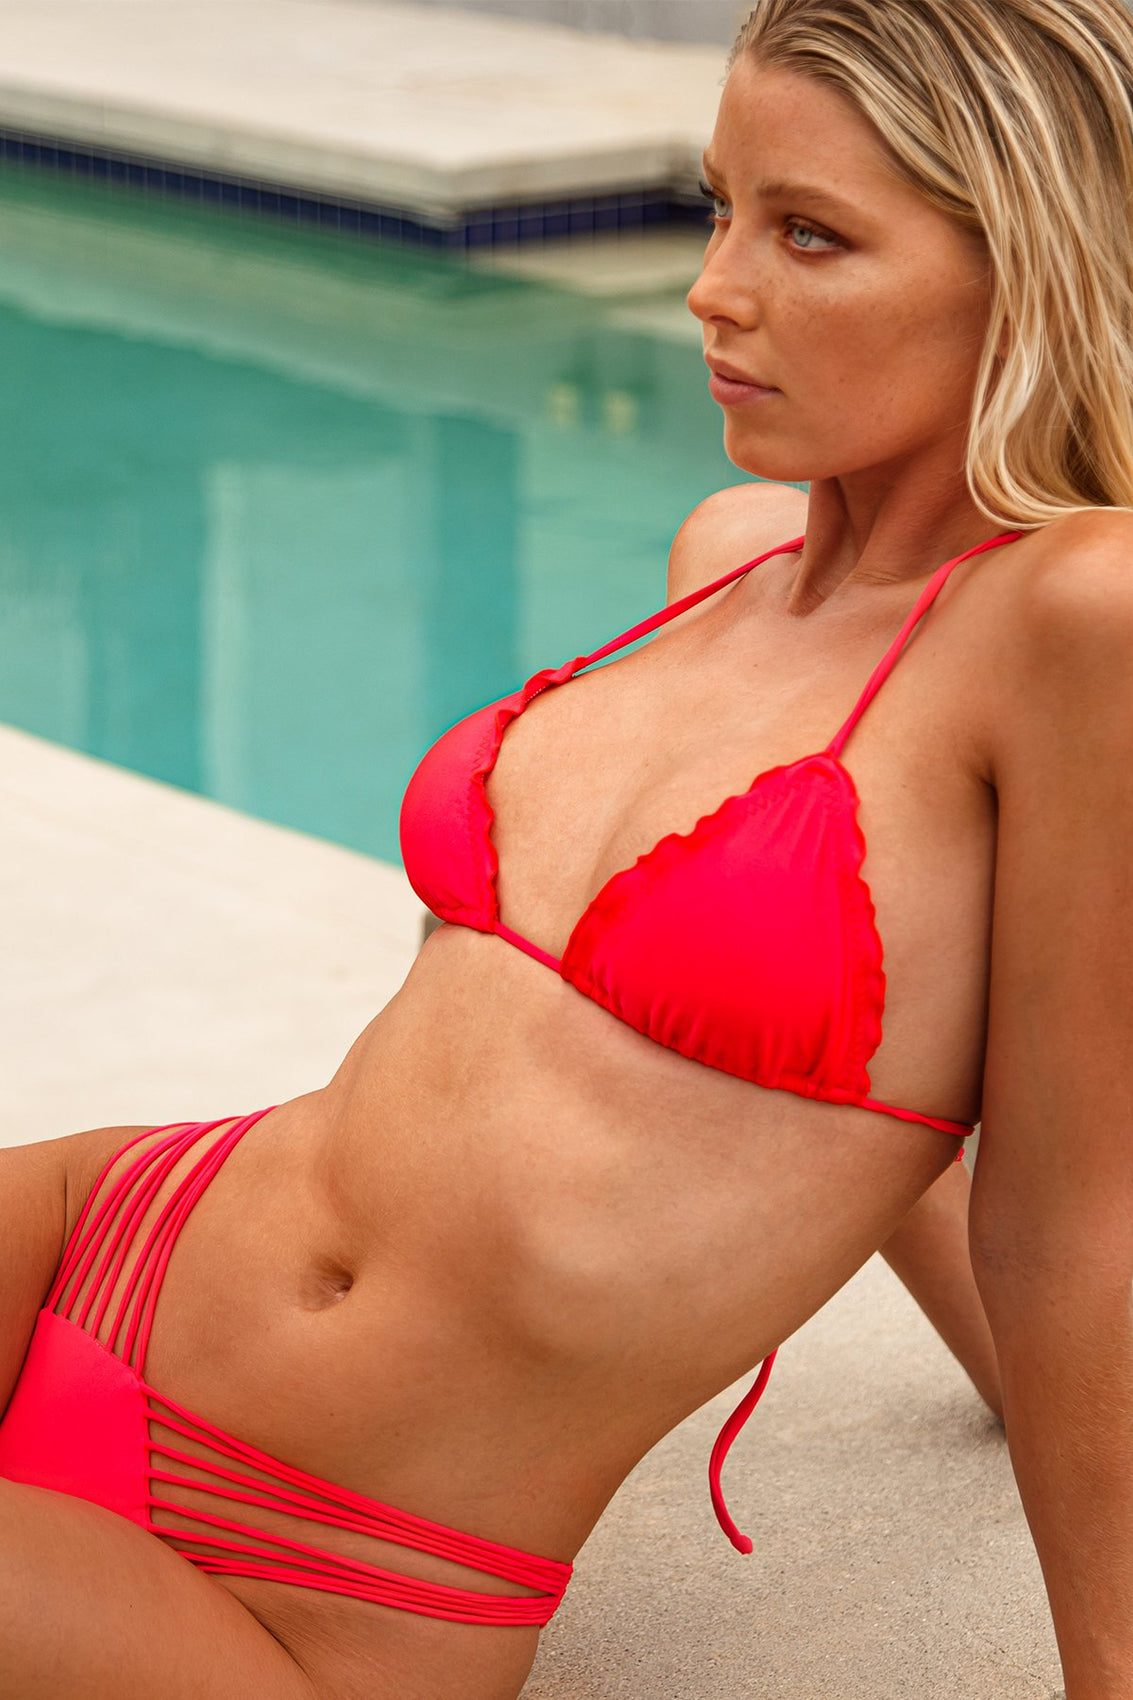 COSITA BUENA - Wavy Triangle Top & Strappy  Ruched Back Bottom • Bombshell Red Campaign